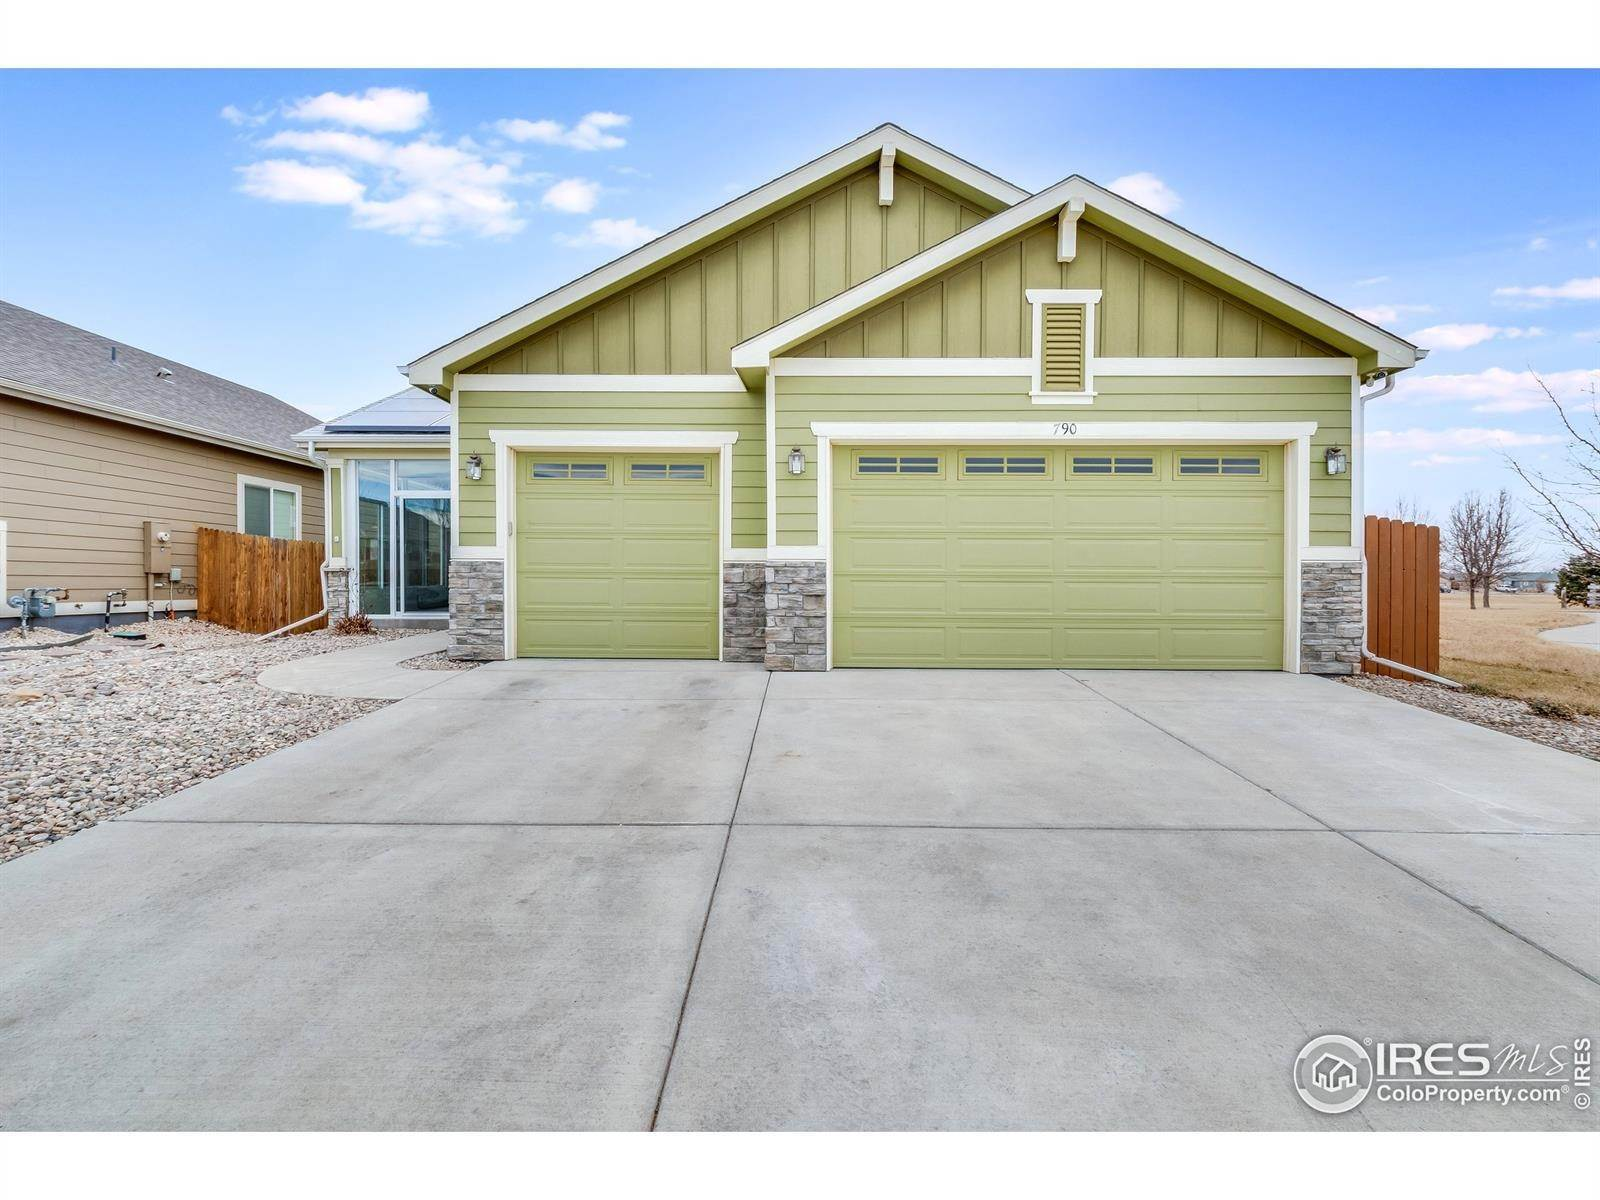 Single Family Homes pour l Vente à 790 Village Drive Milliken, Colorado 80543 États-Unis